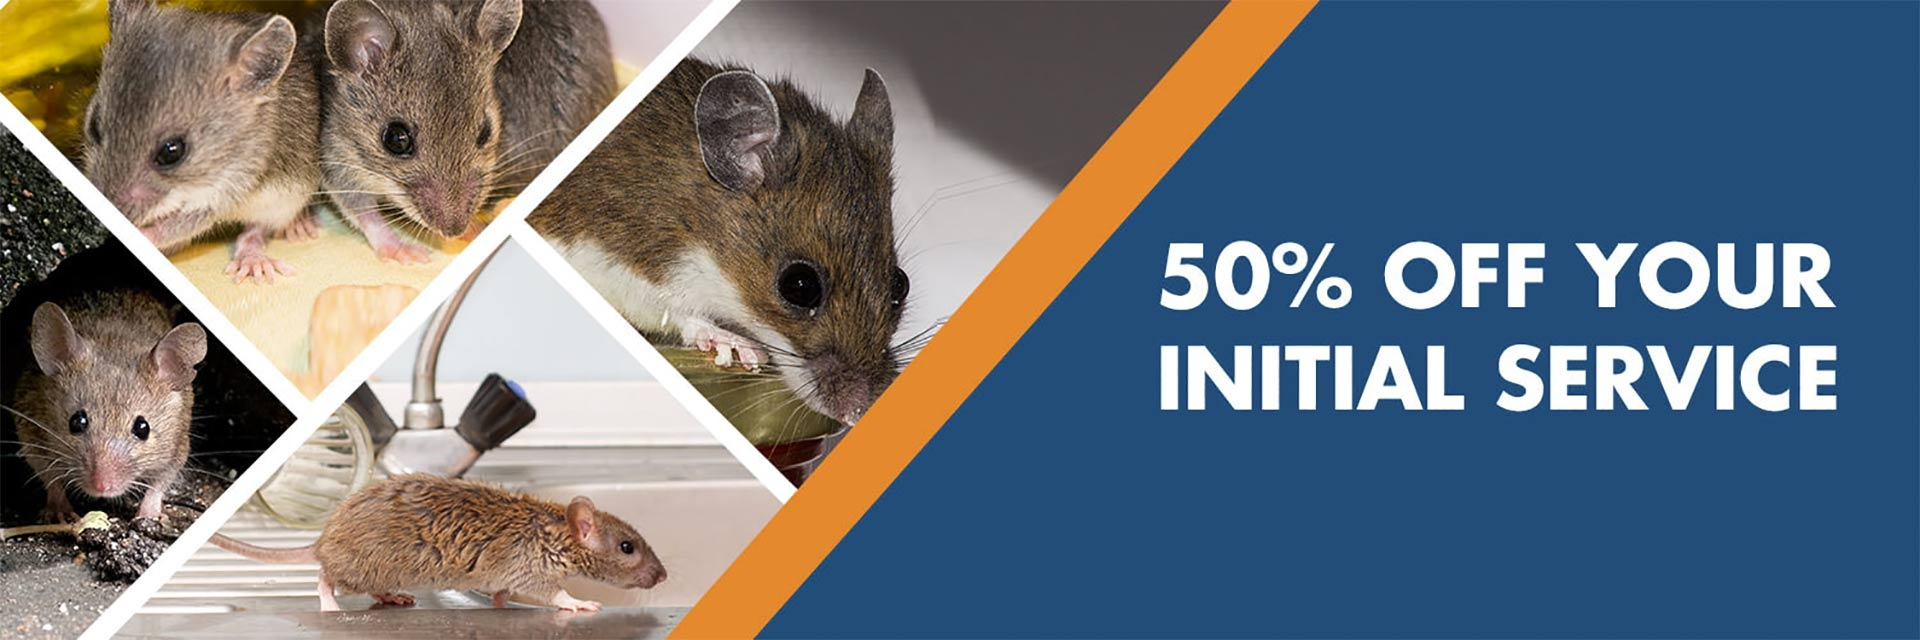 H2 Pest Control coupon for 50% off initial rodent and pest control service in Lehi and Eagle Mountain UT